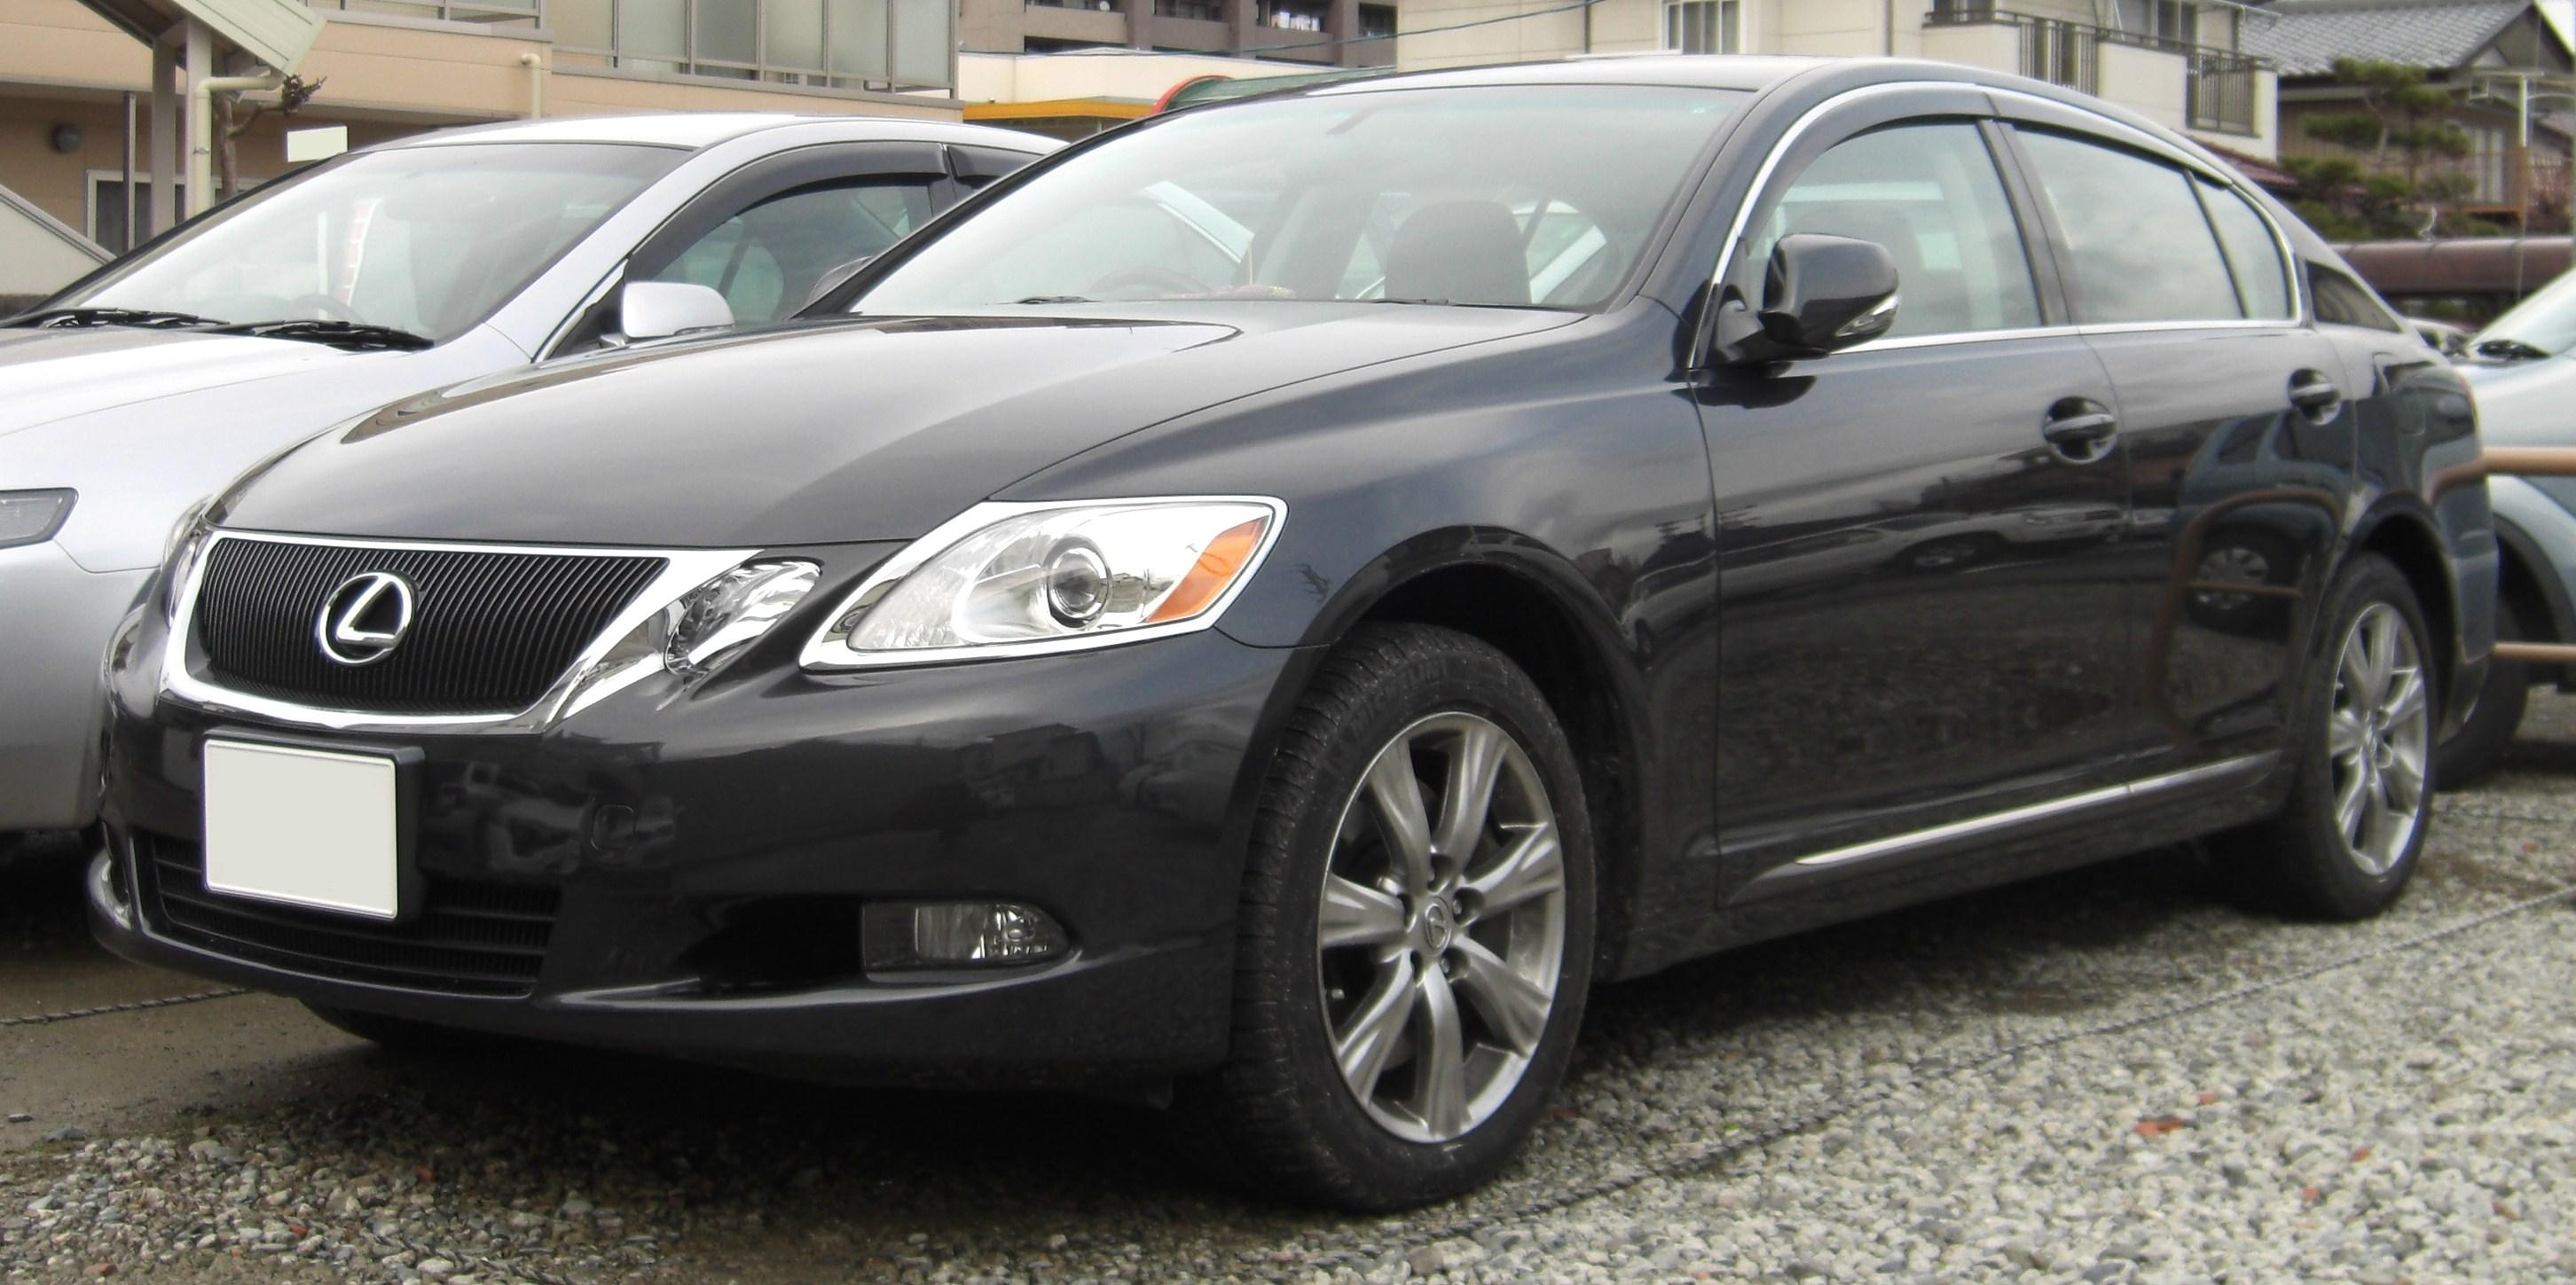 2009 lexus gs 350 information and photos zombiedrive. Black Bedroom Furniture Sets. Home Design Ideas